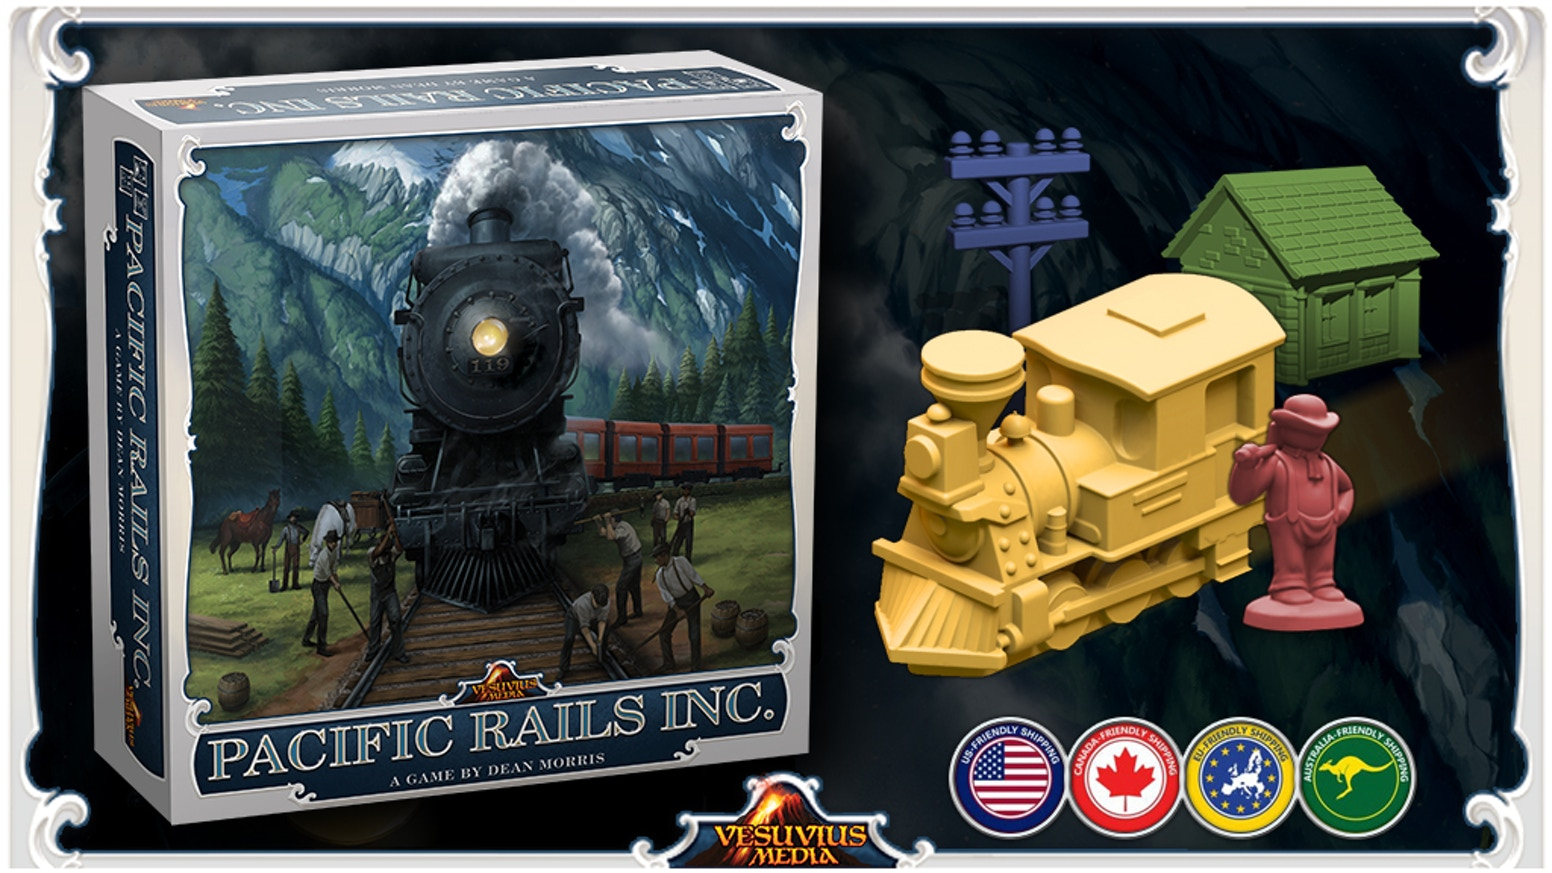 Pacific Rails Inc is an engine building, resource management, worker placement, network/route building game for 2 to 4 players.